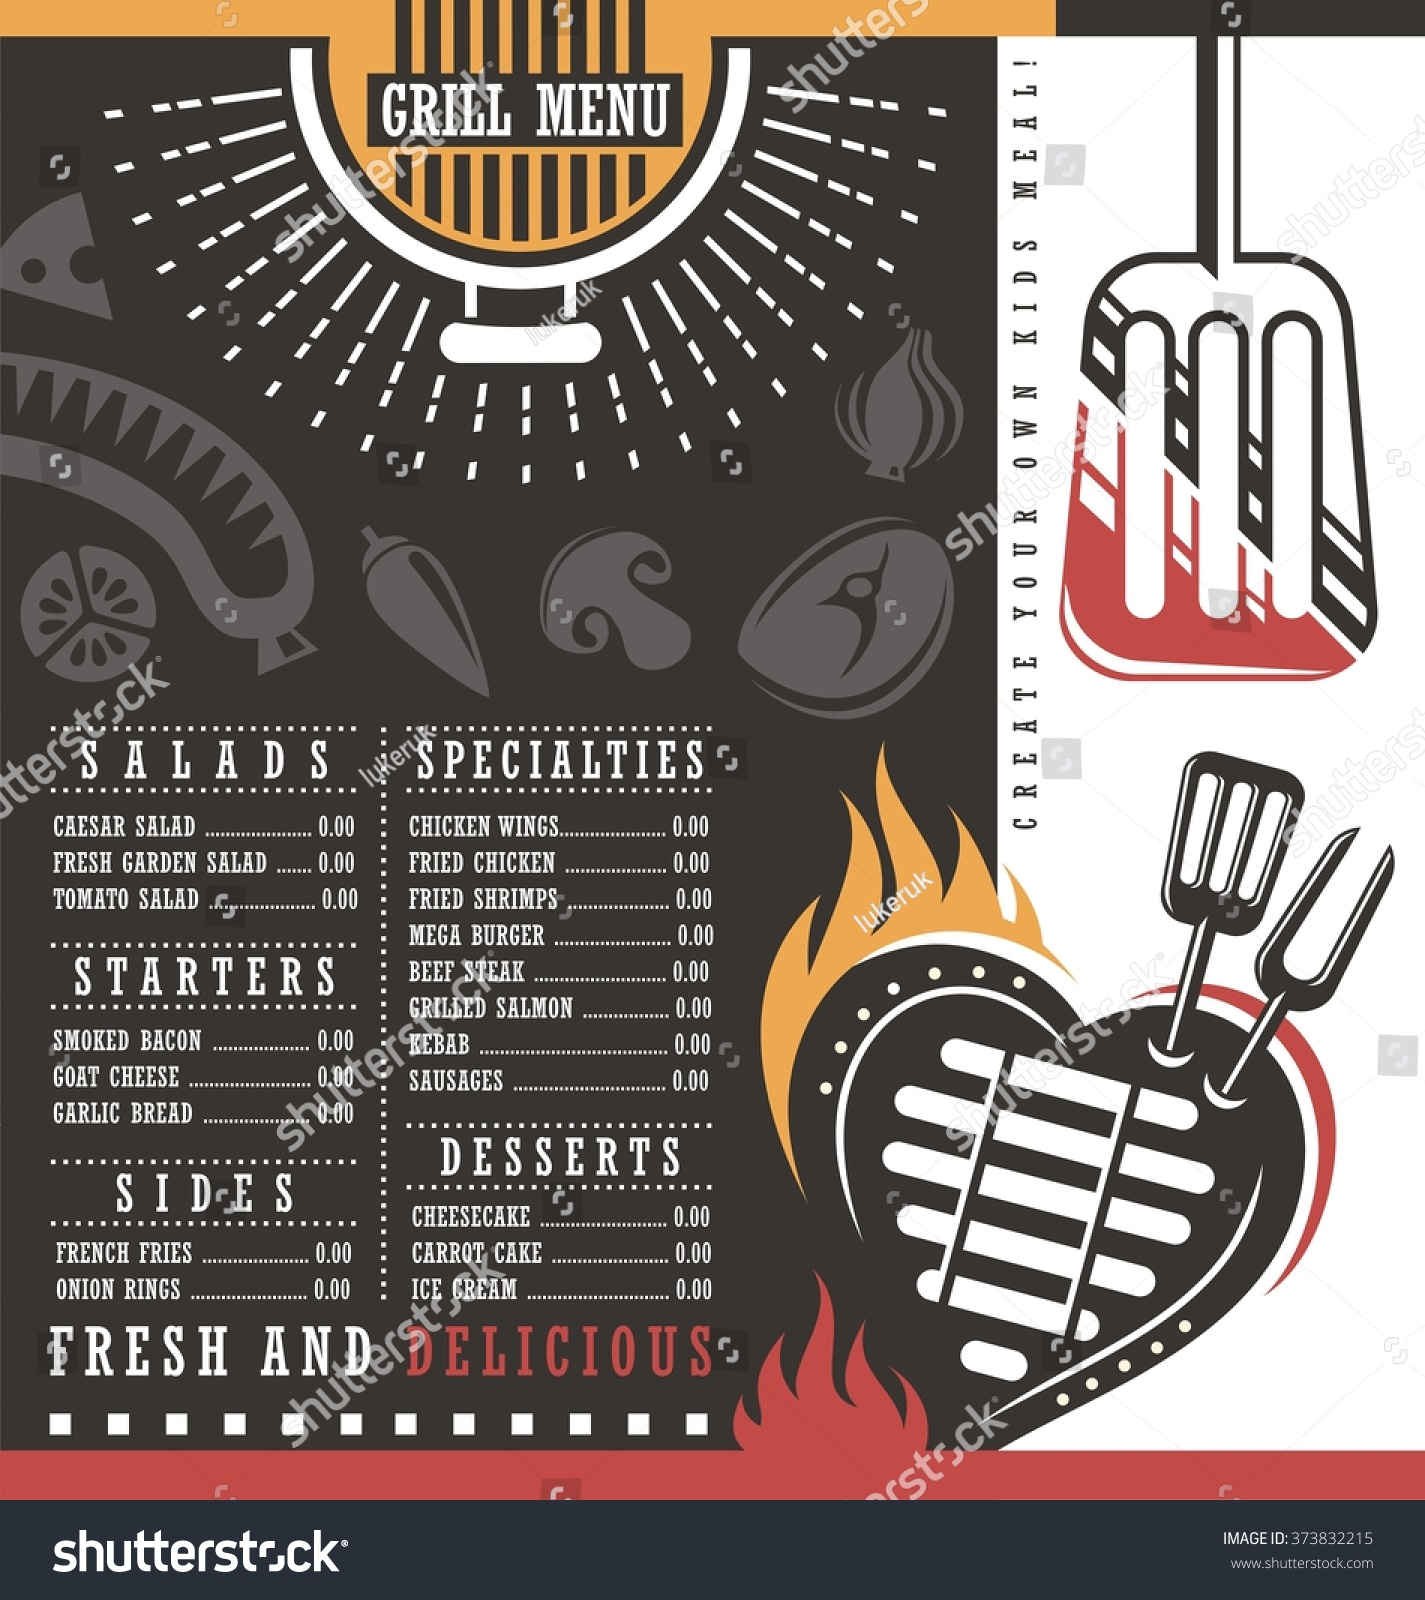 Grill menu design abstract bbq layout concept for